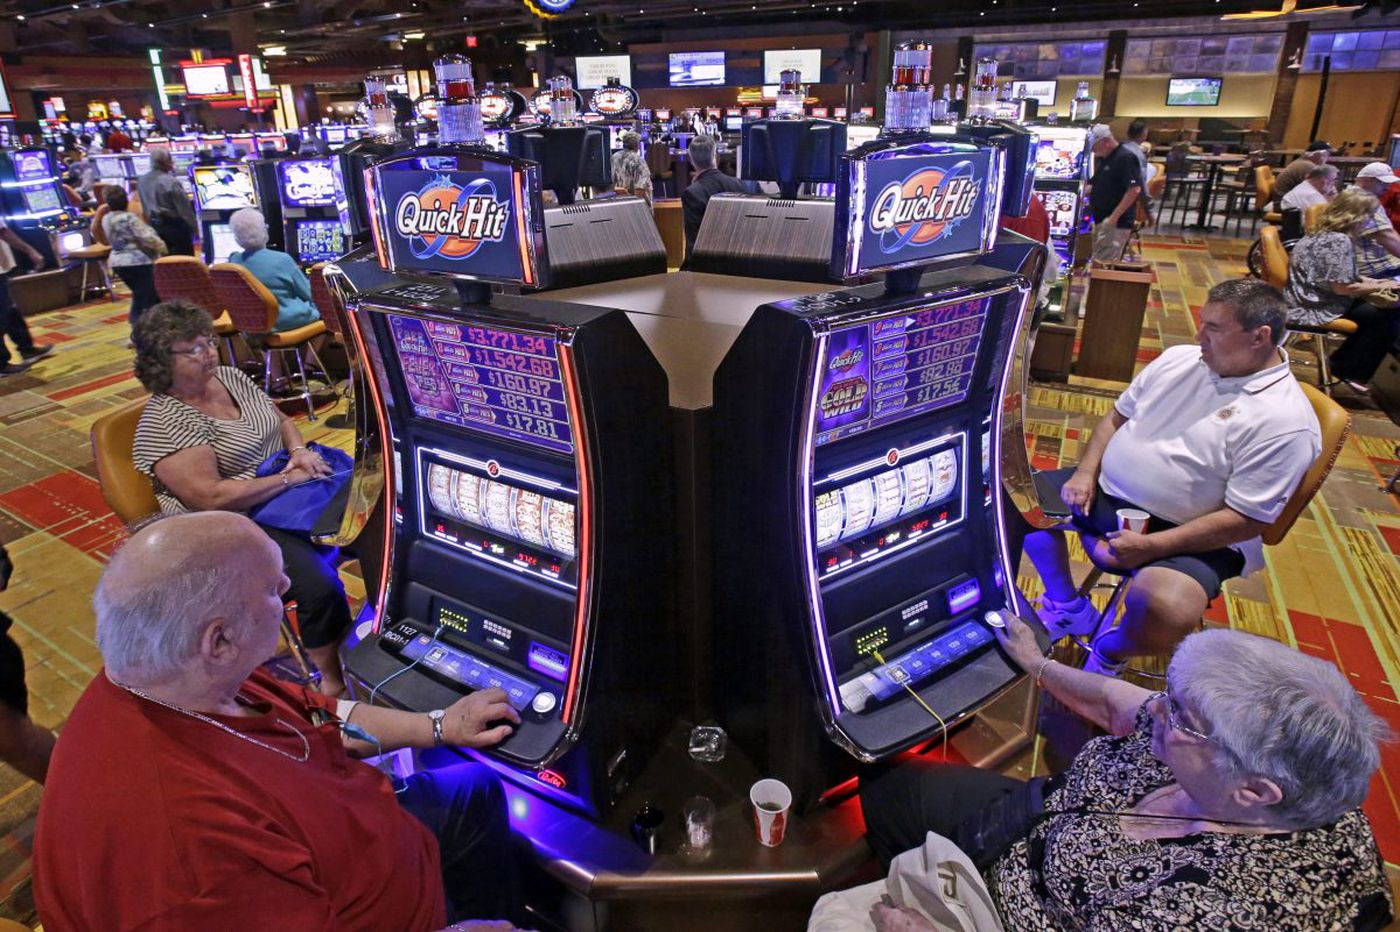 Tucked in Pa. gaming bill: A million-dollar clause for Mount Airy Casino